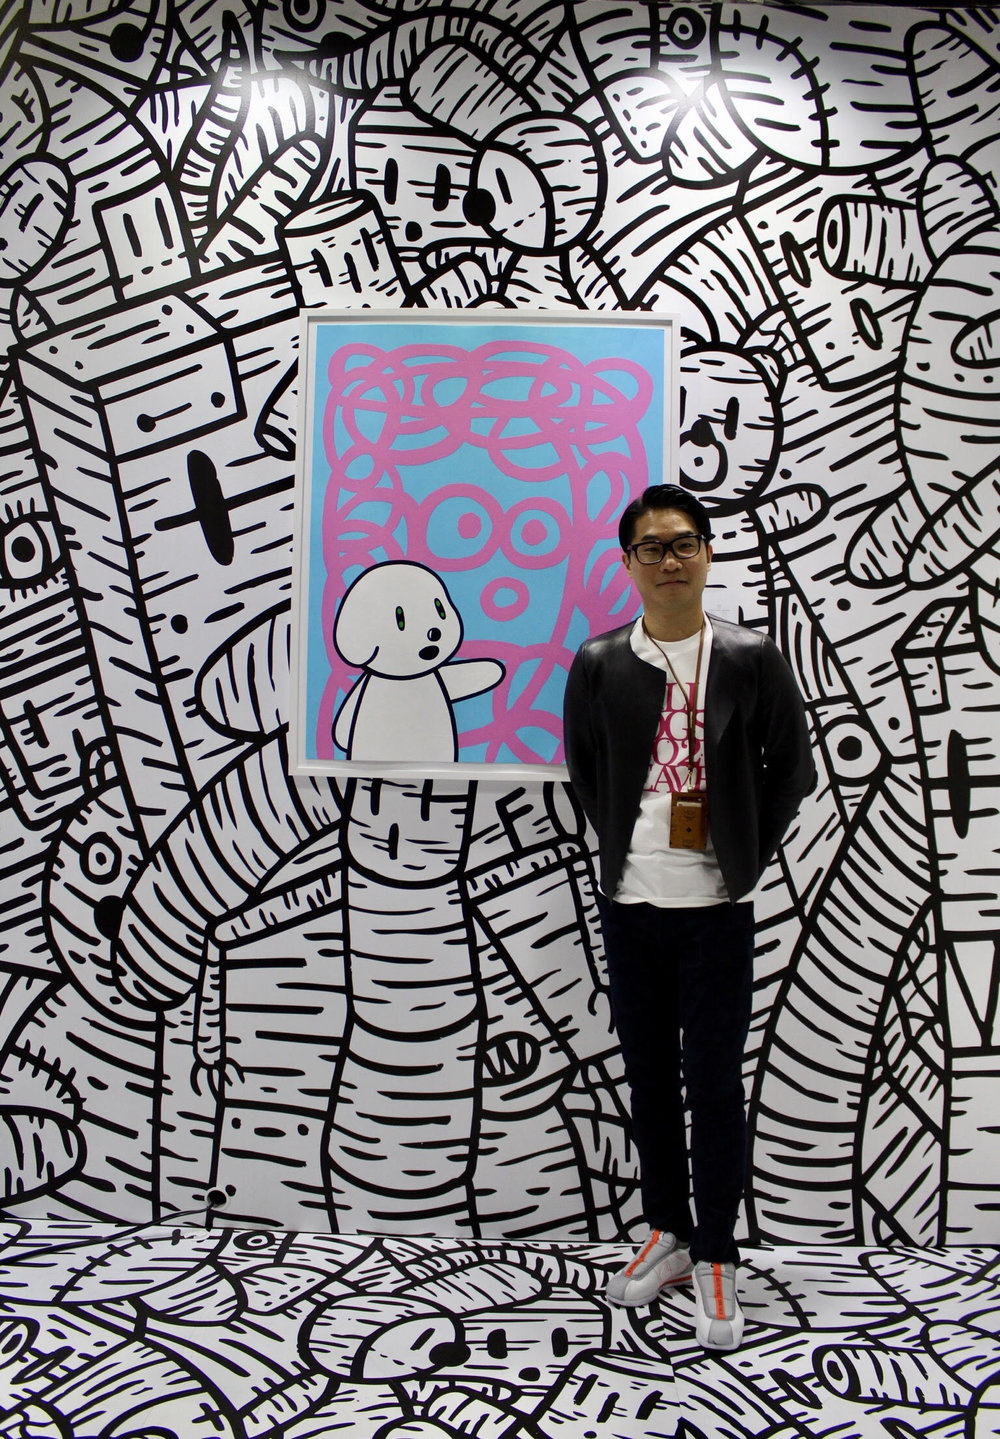 Eddie Kang with his art